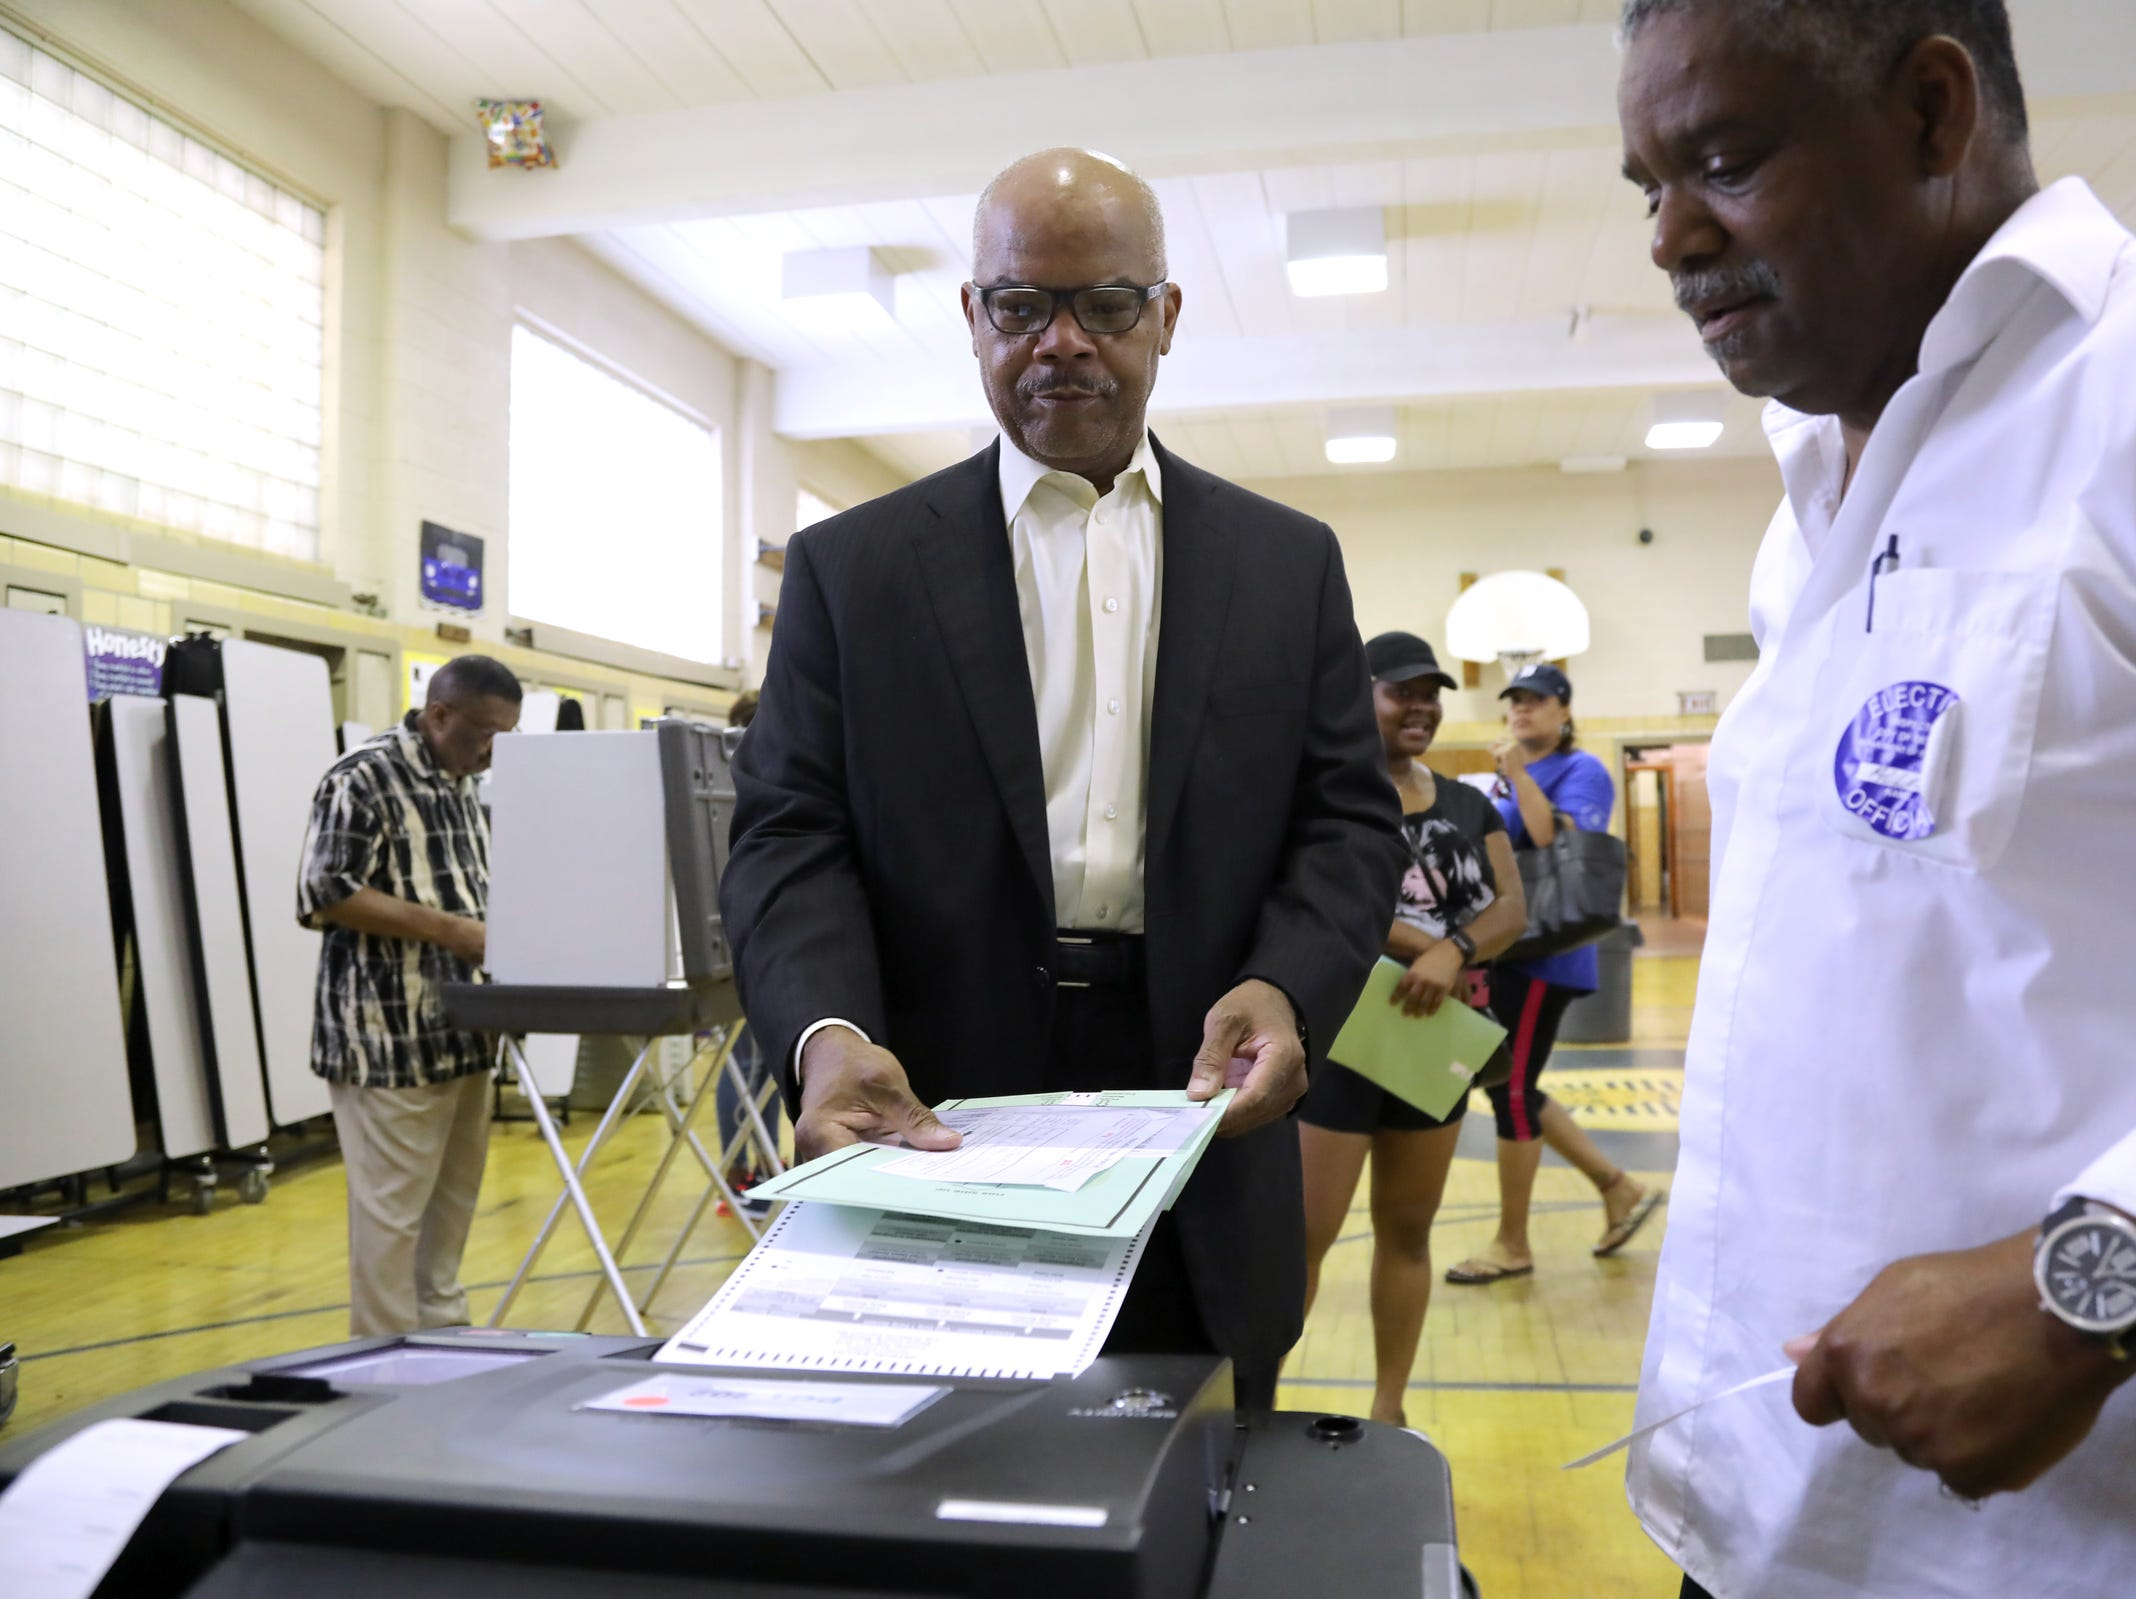 Greg Terrell, 65, who lives in the historic Sherwood Forest neighborhood of Detroit, casts his vote in the Michigan primaries with assistance from poll worker Alvin Lee, 62, of Detroit at Pasteur Elementary on Tuesday, Aug, 7, 2018.